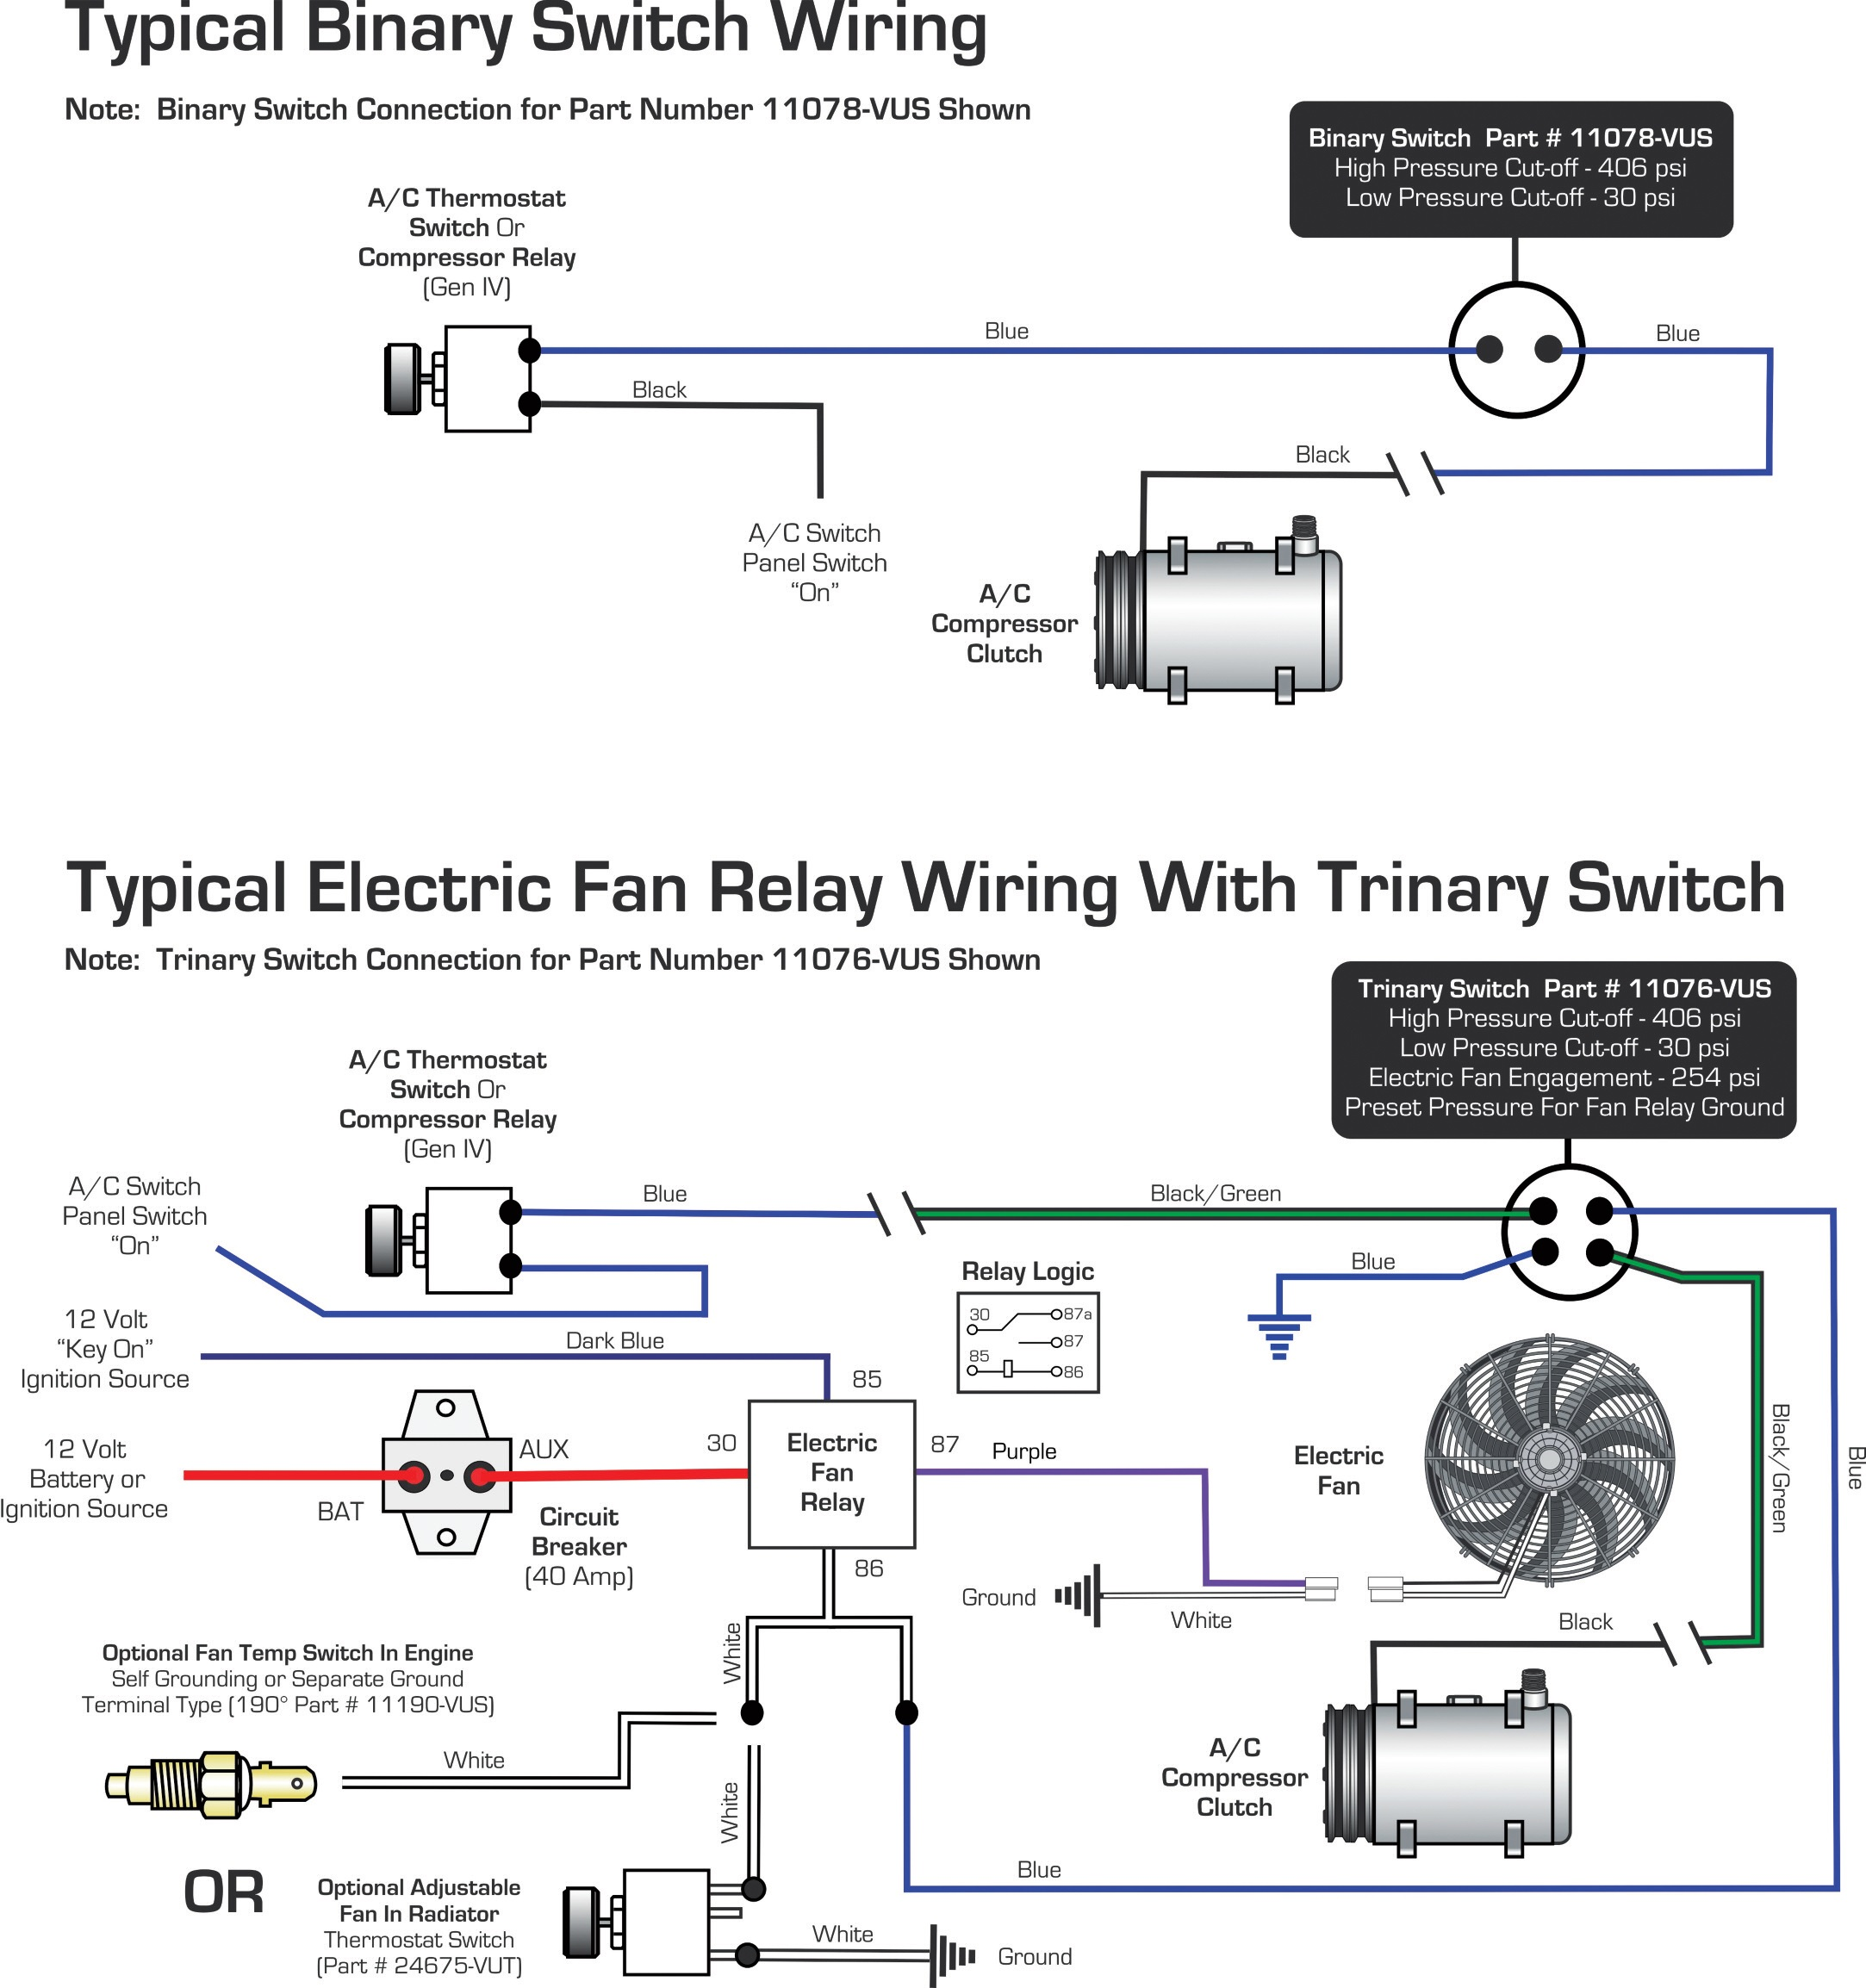 [DIAGRAM_38YU]  6DD Vintage Air Alternator Wiring Diagram | Wiring Library | 1966 Ford Air Conditioning Wiring Diagram |  | Wiring Library